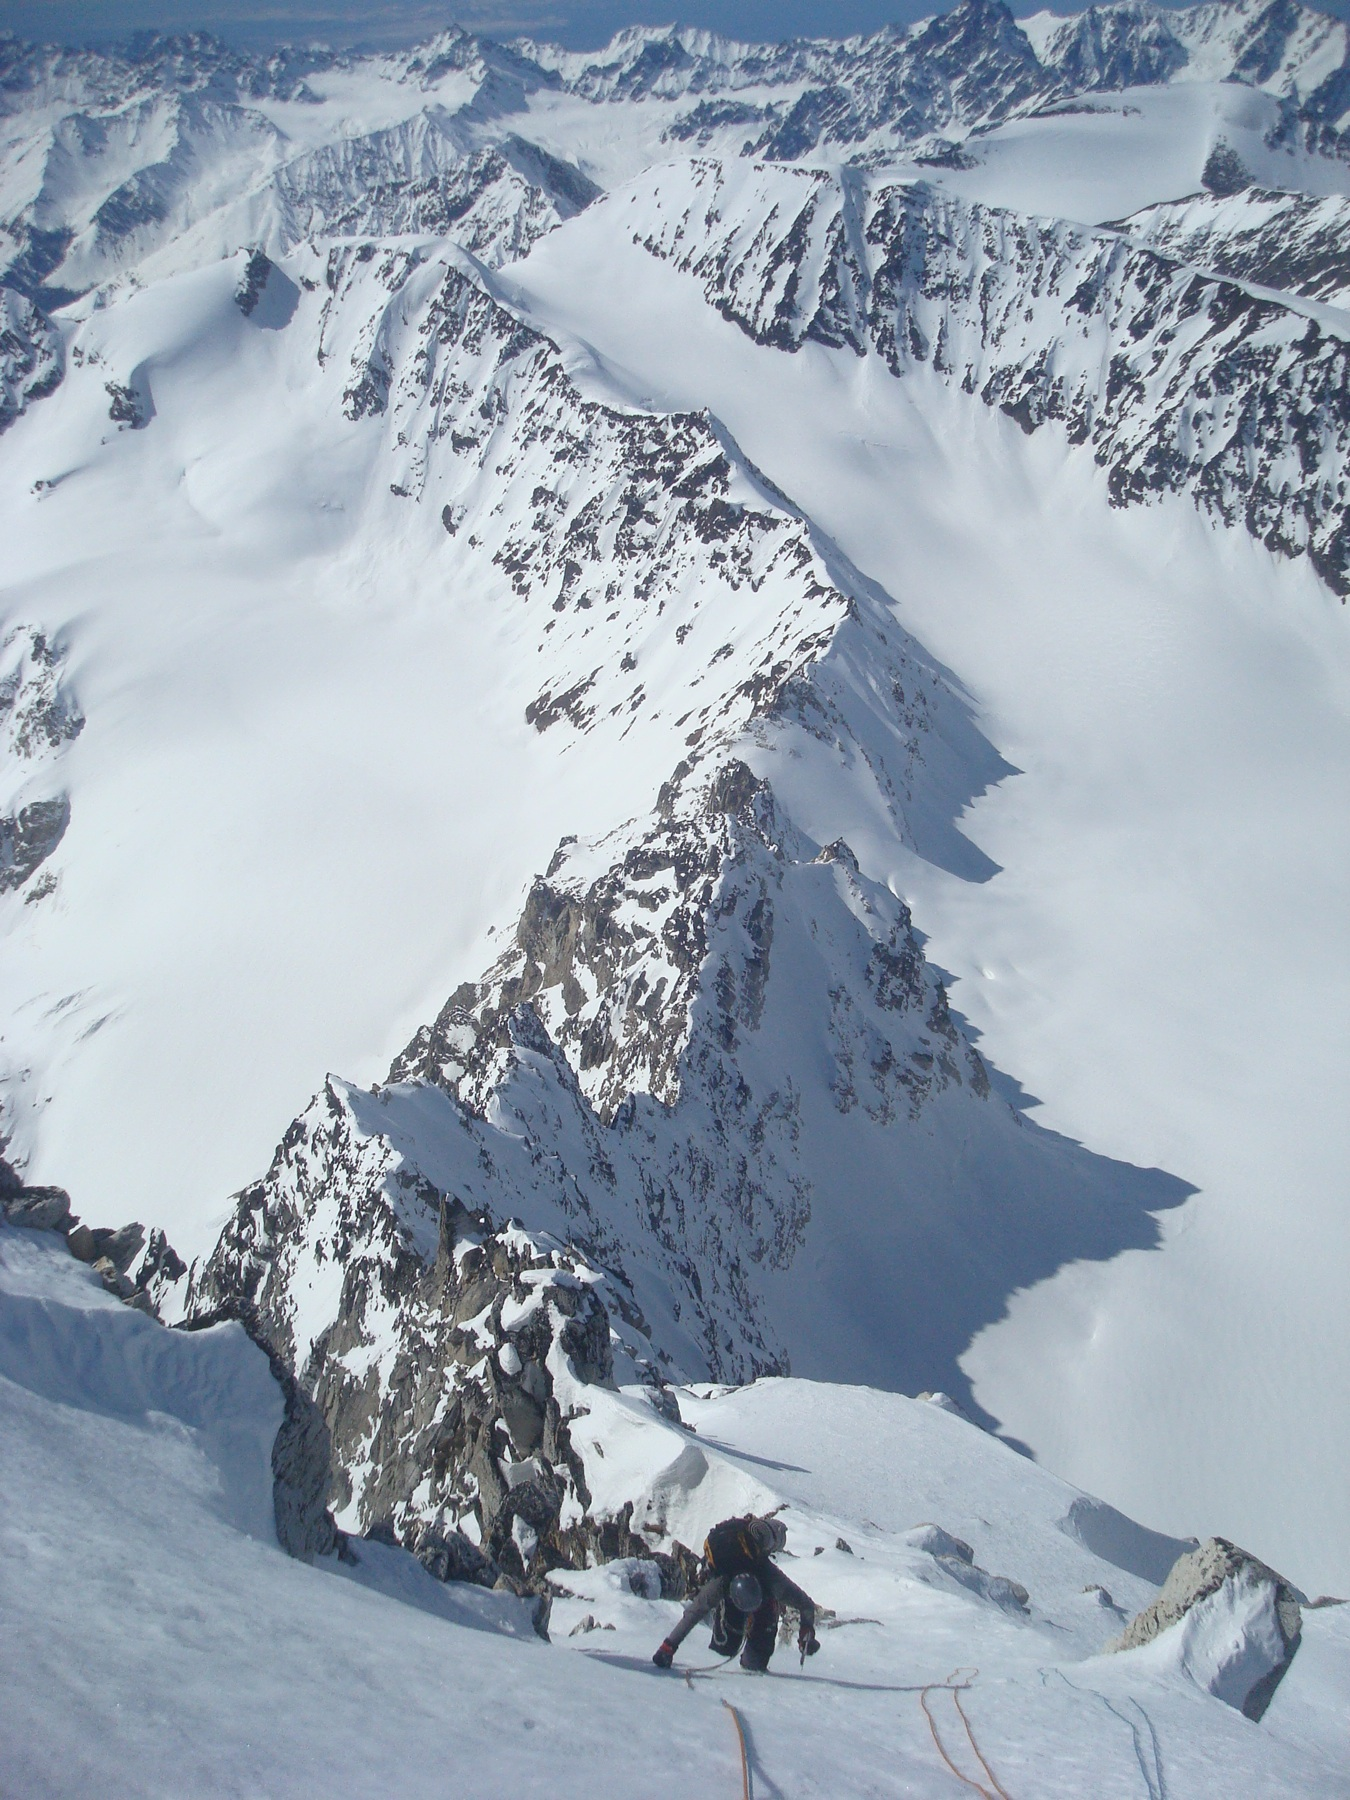 Seth Holden nearing the summit ridge on the first ascent of Ice Pyramid.